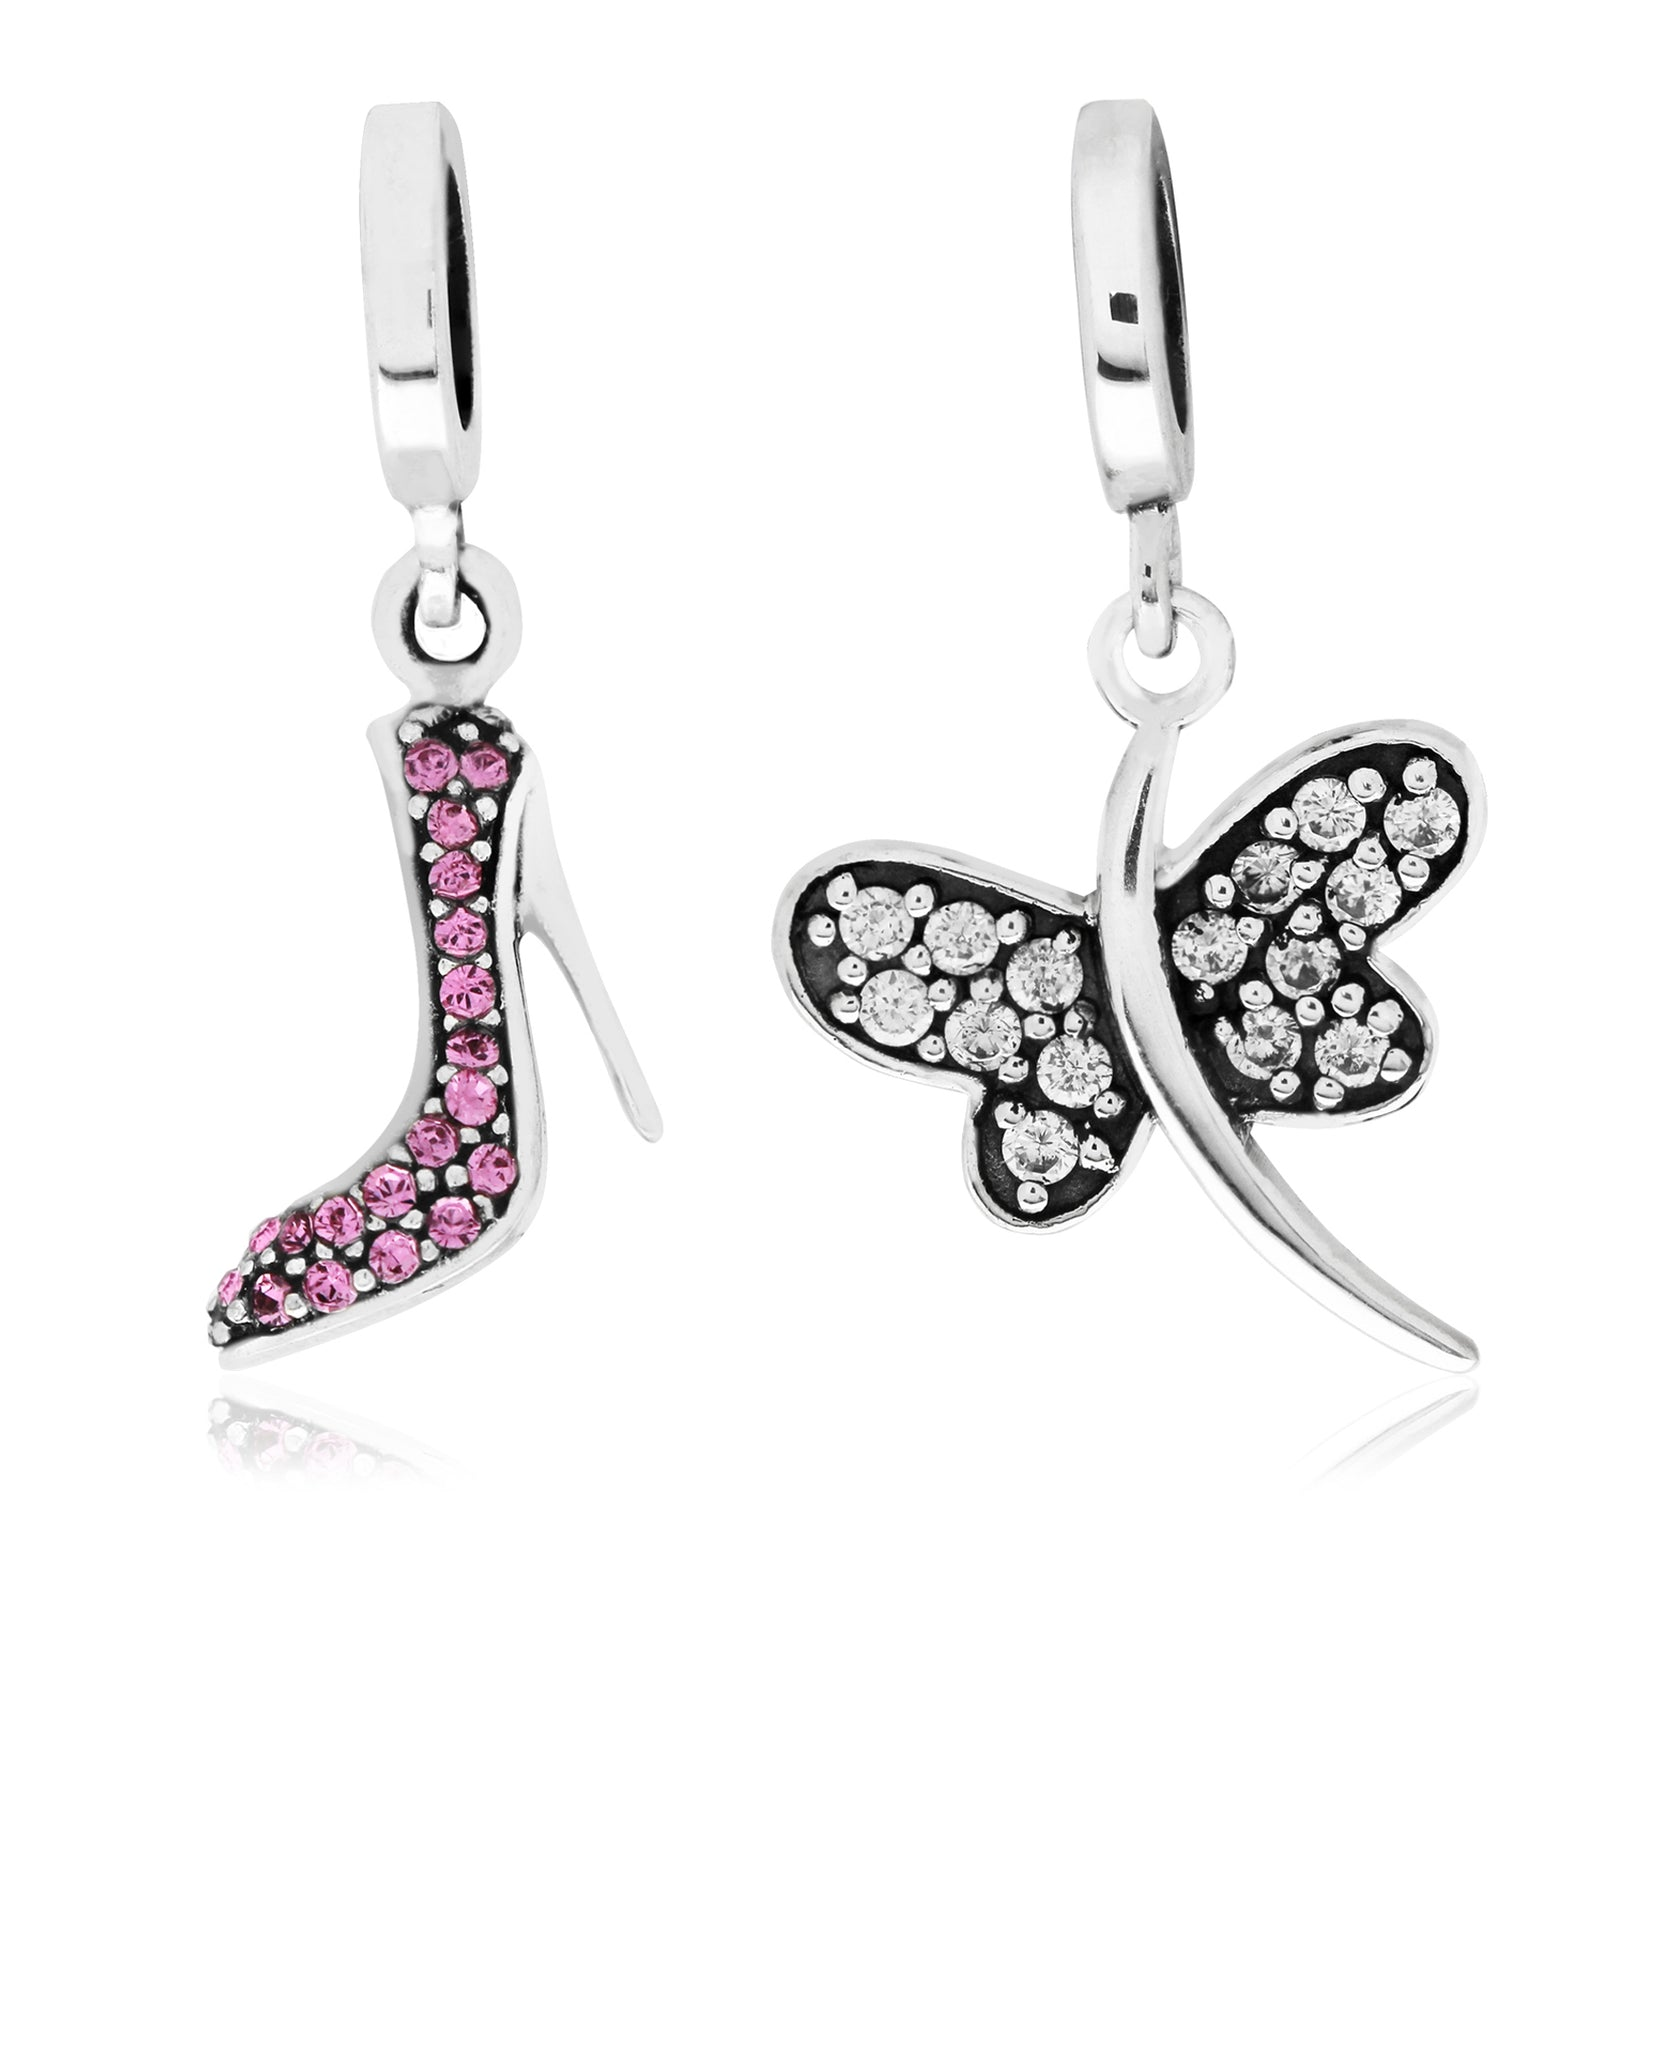 2-Pc. Set Cubic Zirconia High Heel & Dragon Fly Drop Charms in Sterling Silver - Rhona Sutton Jewellery